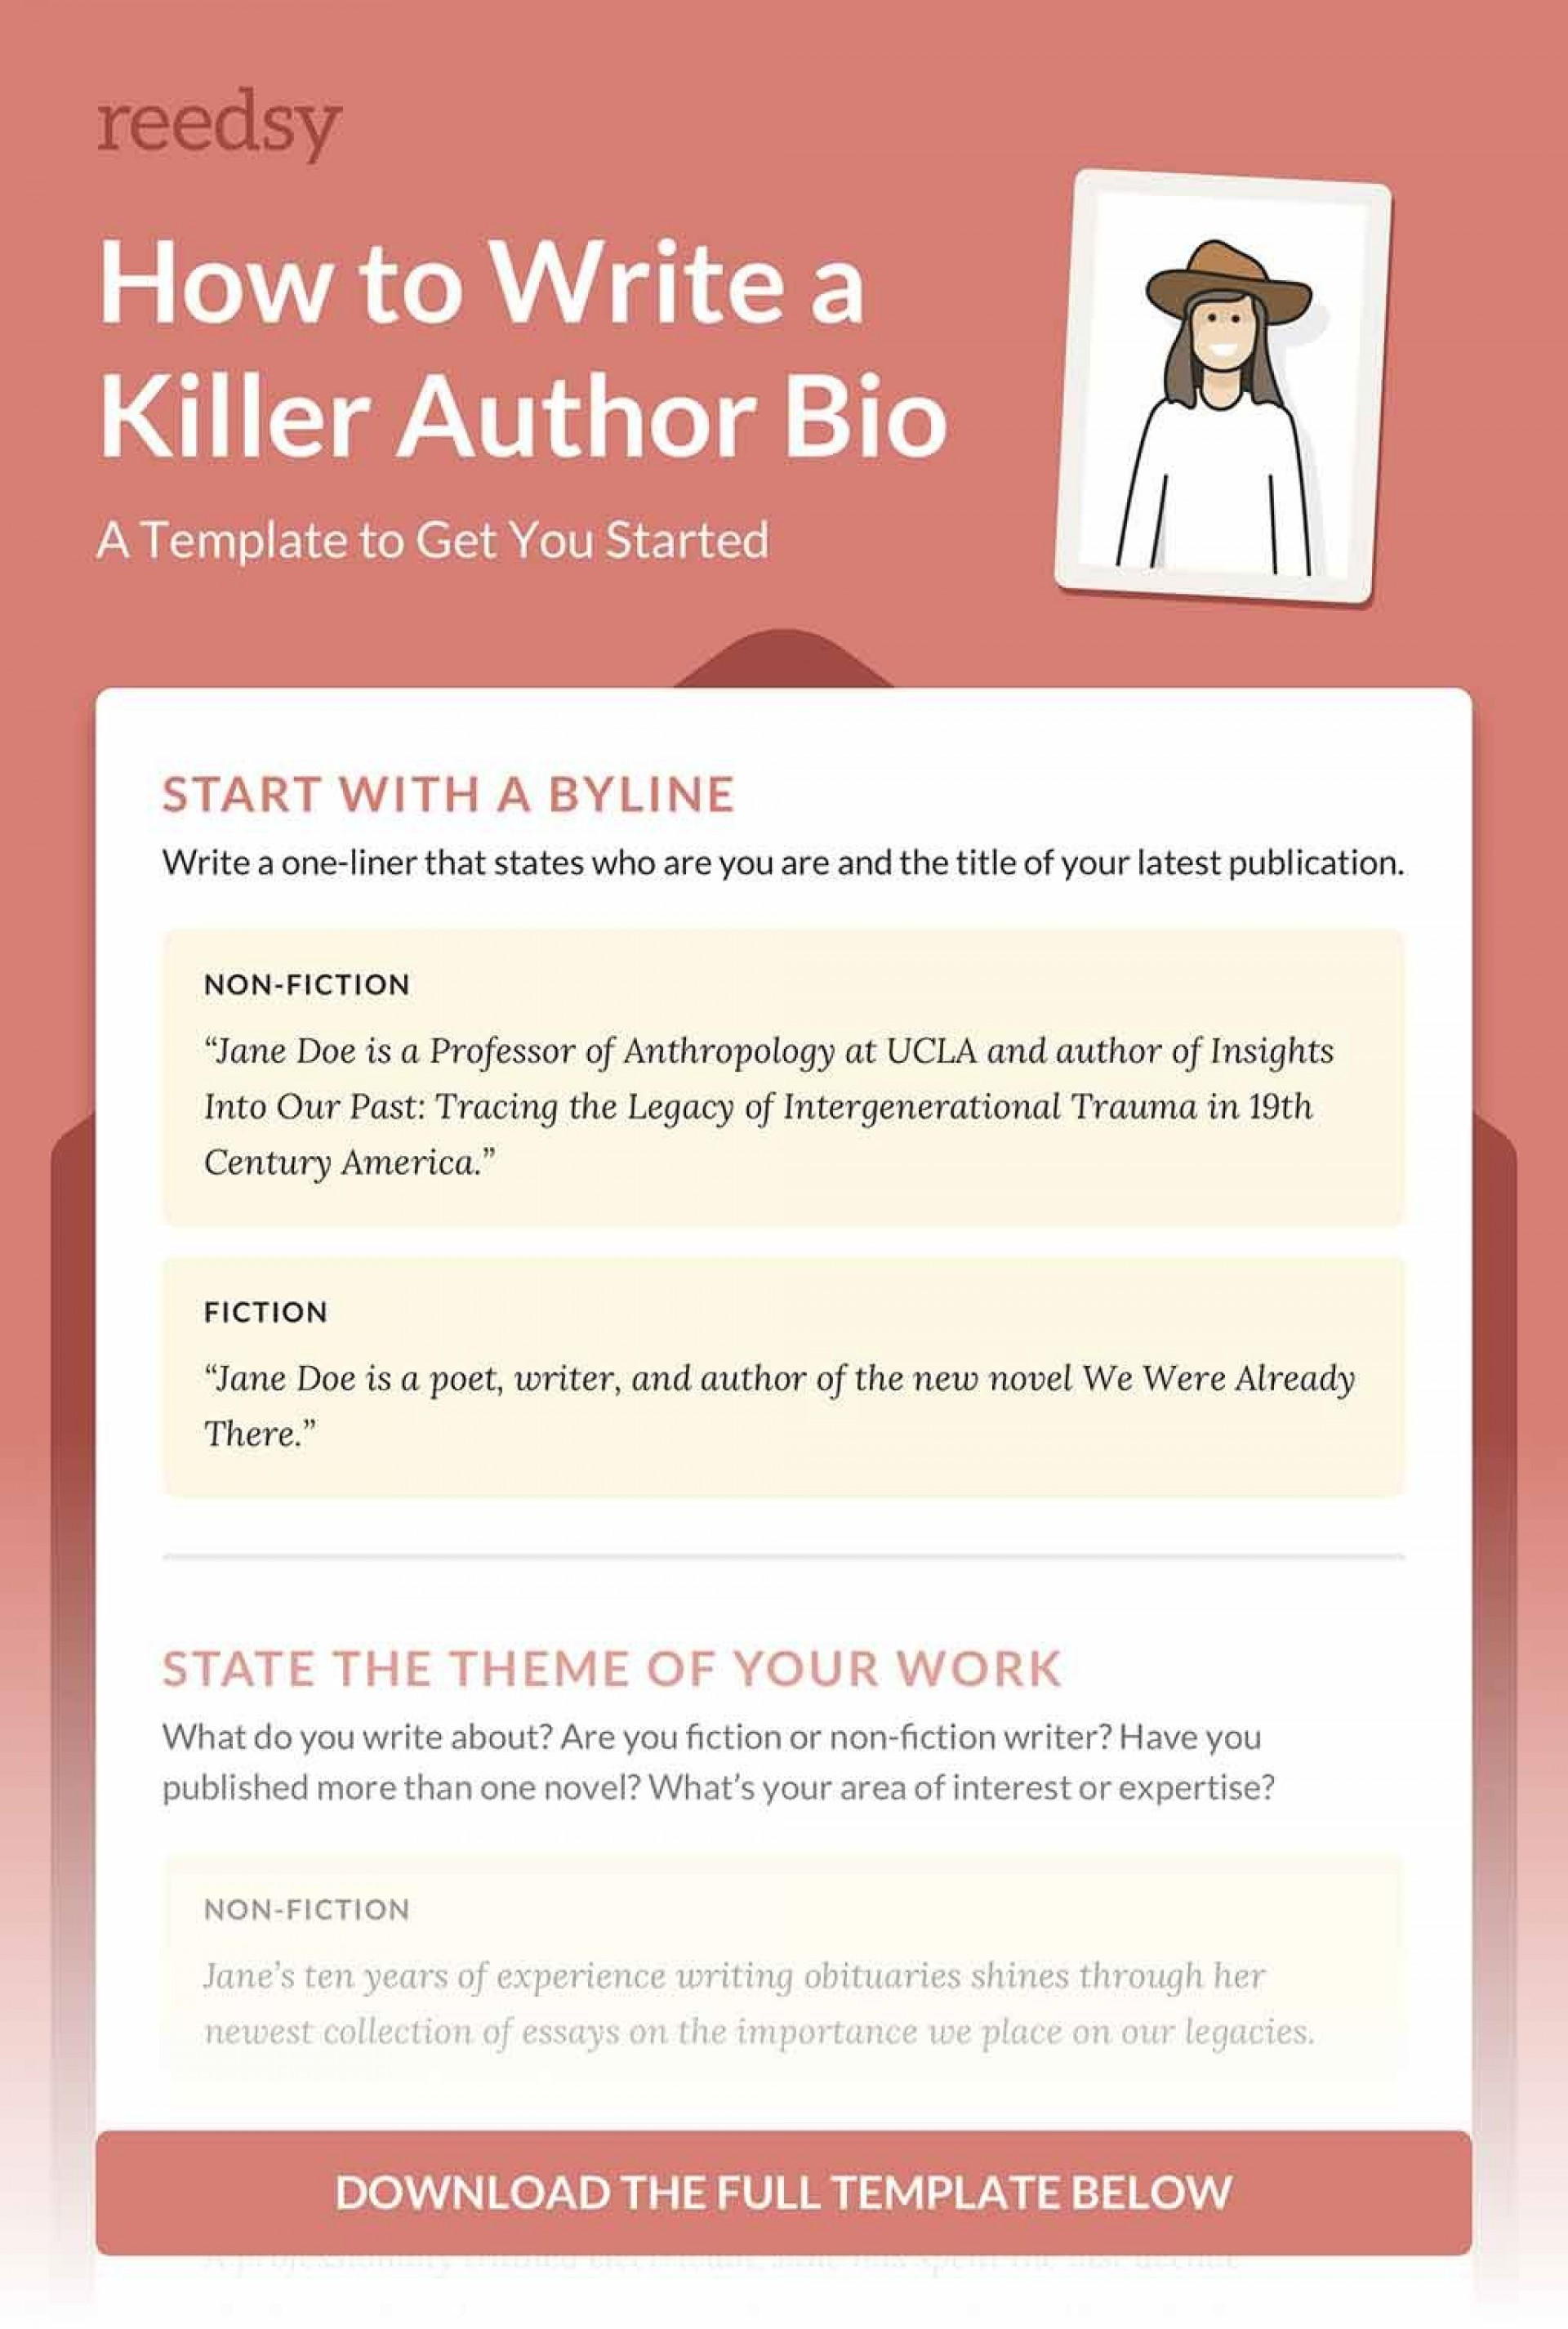 003 Unique About The Author Template Inspiration  Pdf All For Student1920